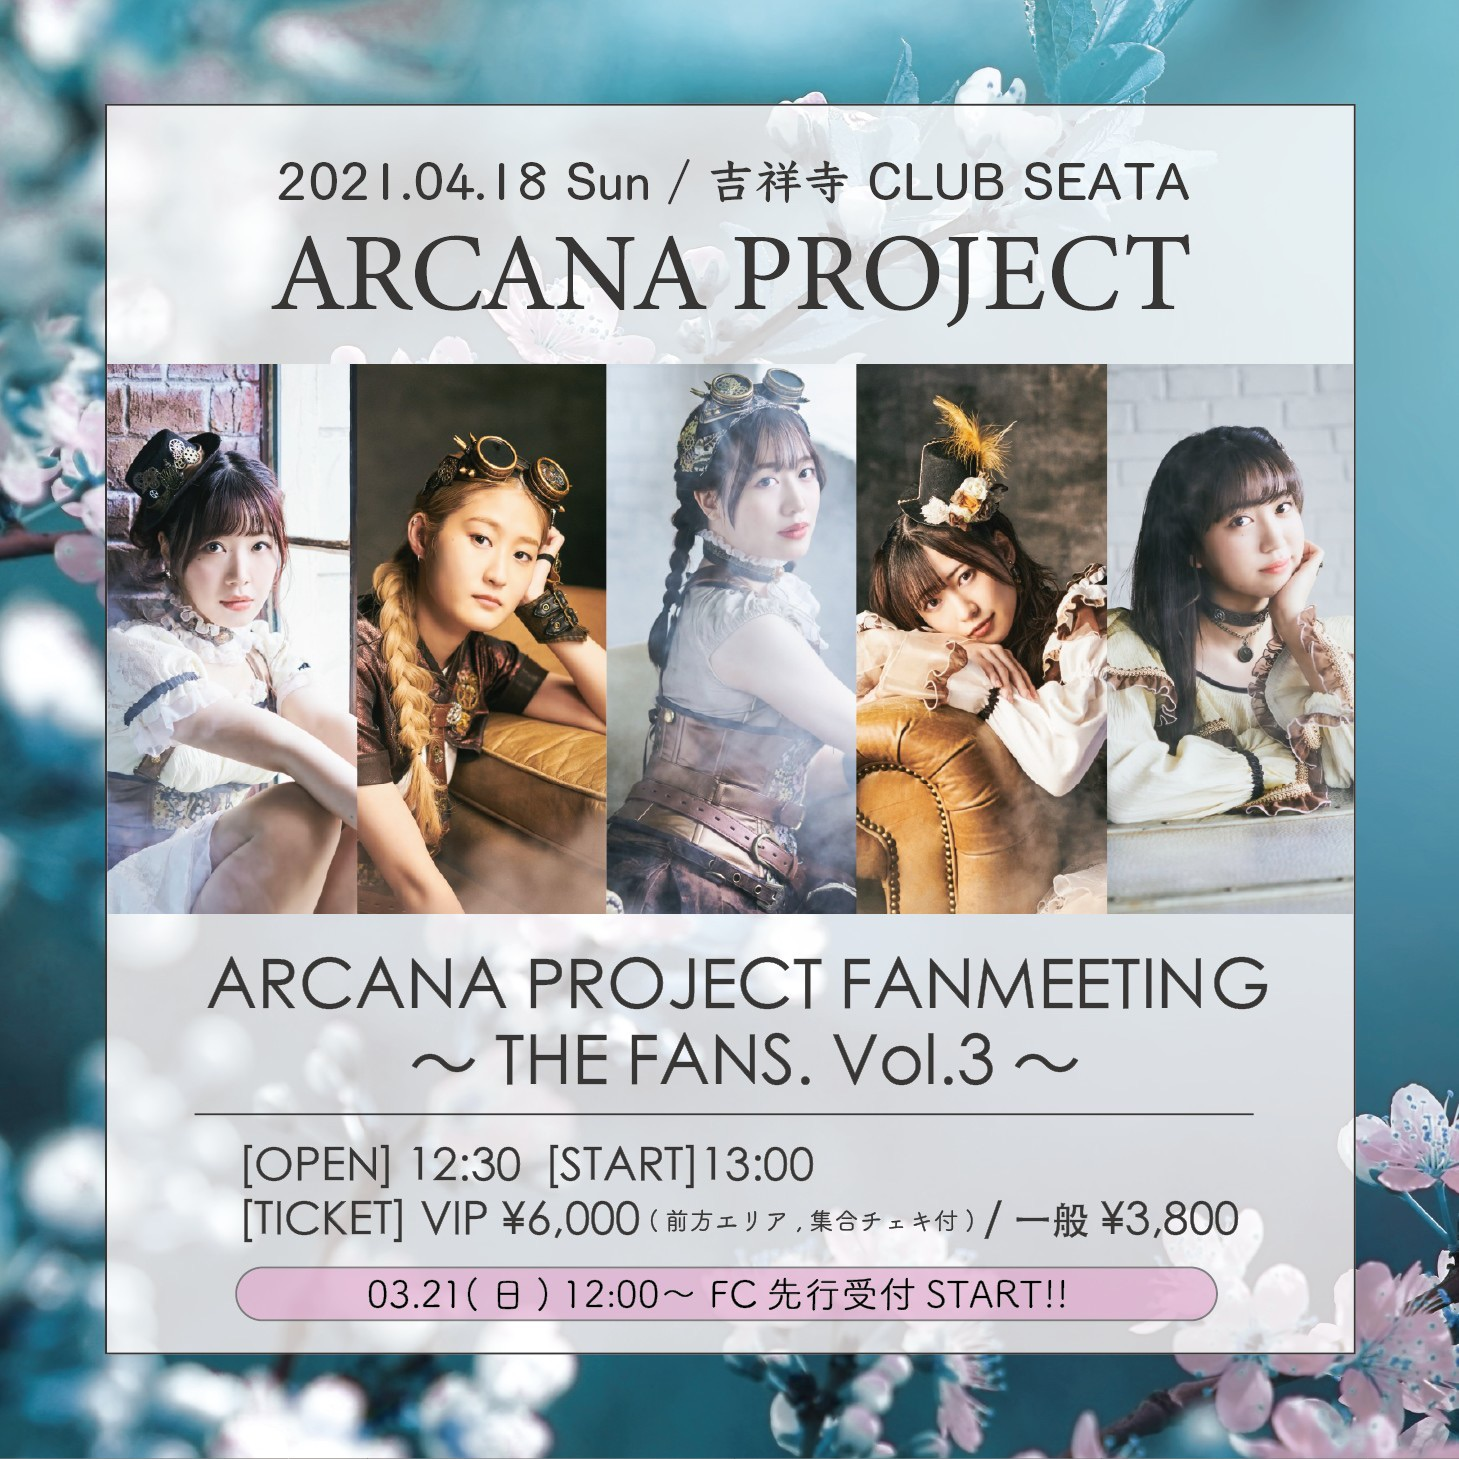 ARCANA PROJECT FANMEETING 〜THE FANS. Vol.3〜